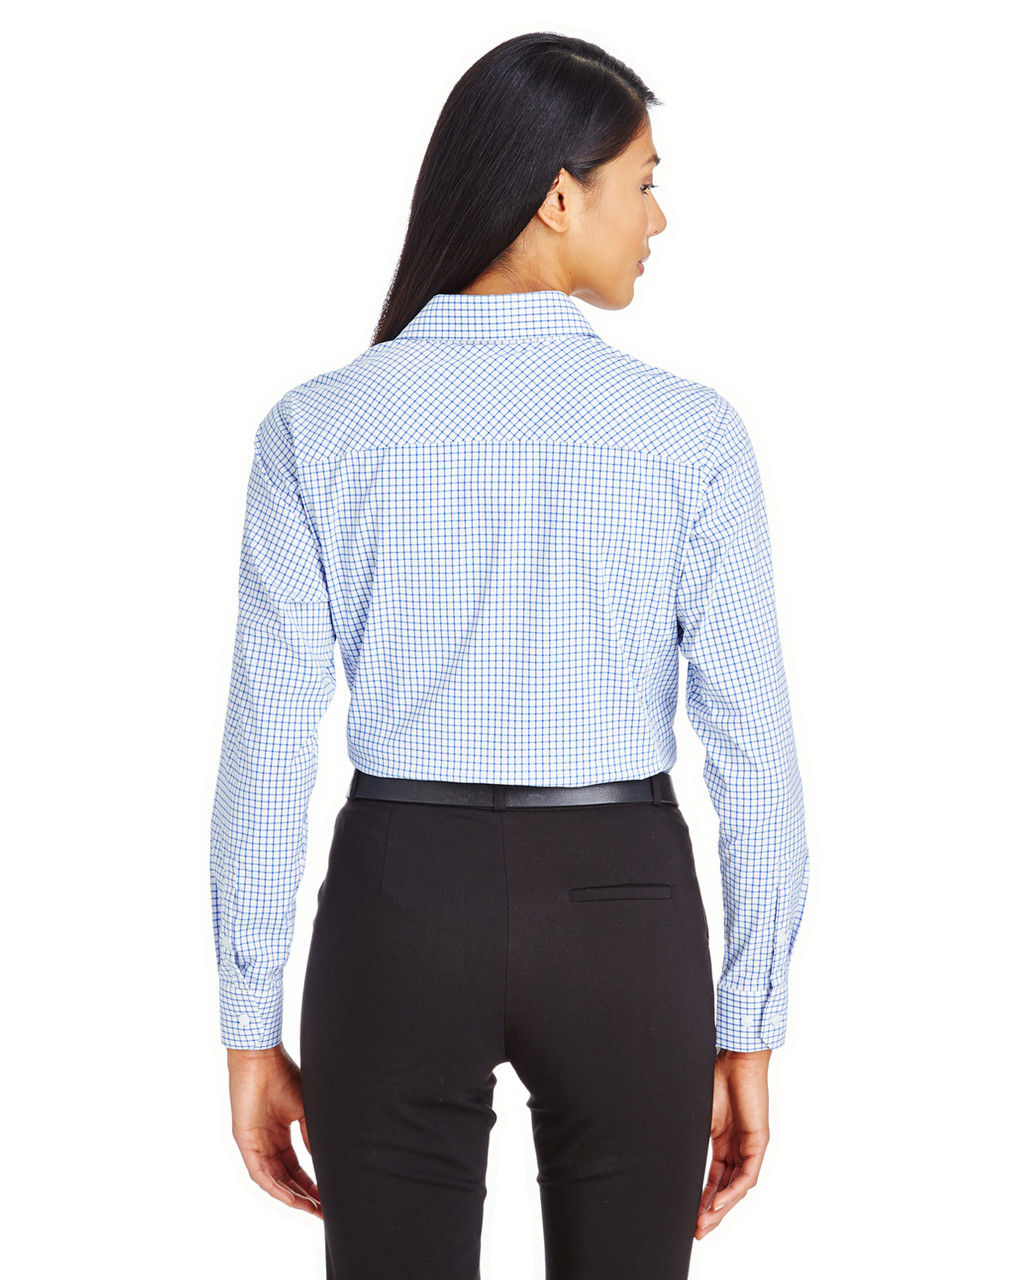 French Blue/White - DG540W Devon & Jones Ladies' CrownLux Performance™ Micro Windowpane Shirt